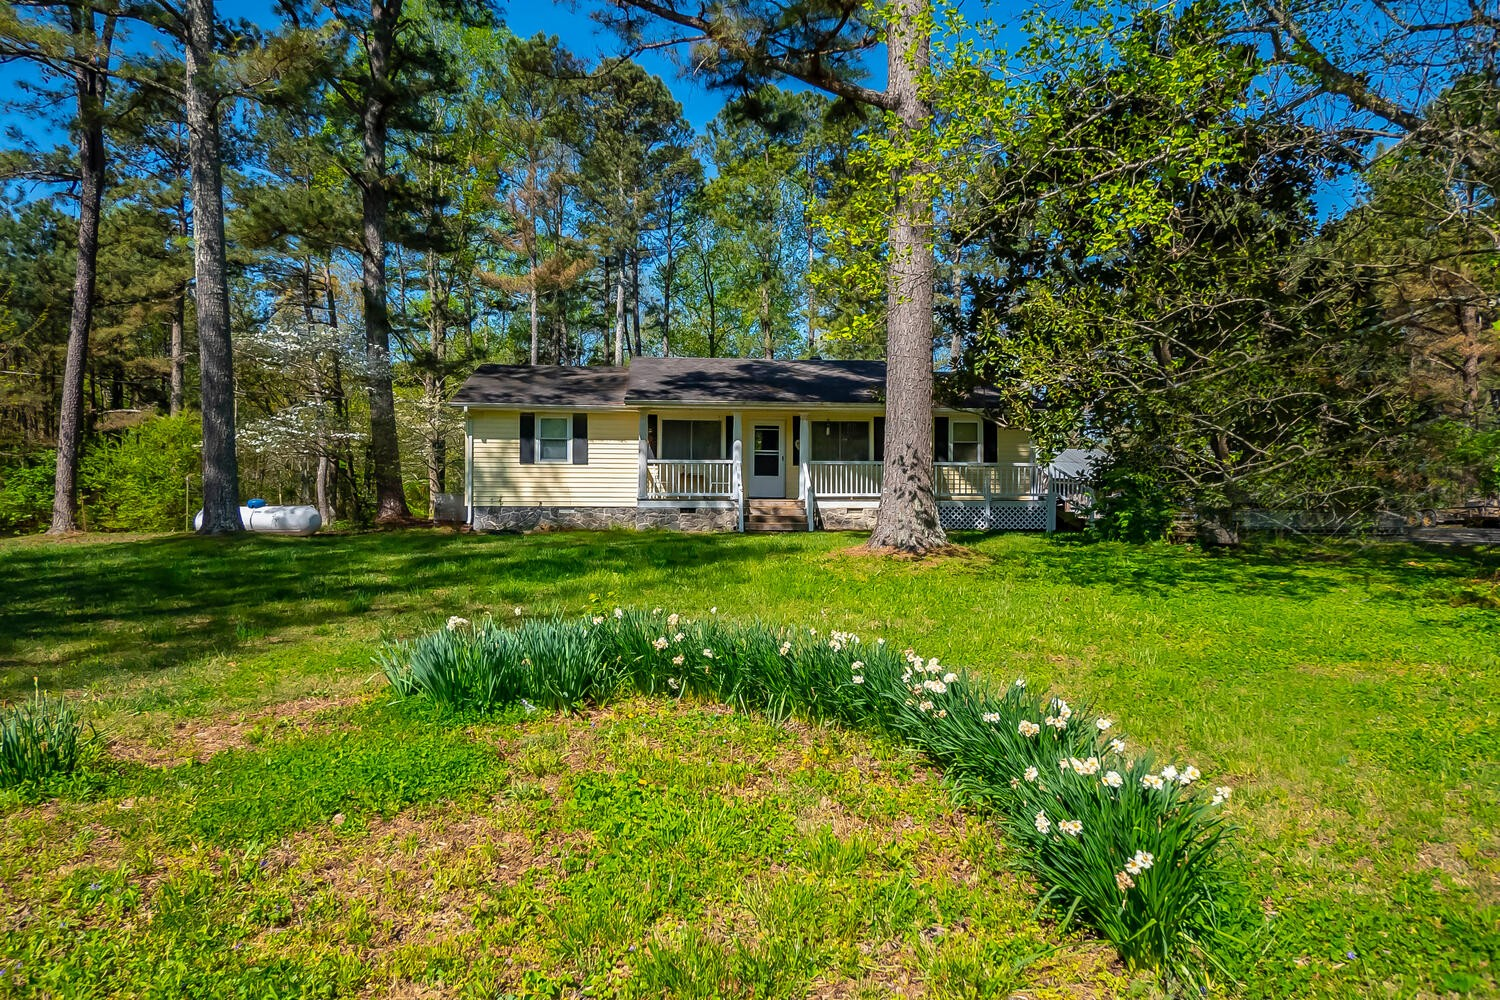 Come see this great little home on 2.53 acres just 3 miles to Leipers Fork.  3 Bedroom 2 Bath home would be a great starter home or for a small family.  The huge fenced yard offers great opportunity for garden, space to romp and enjoy.  Home sold as is.